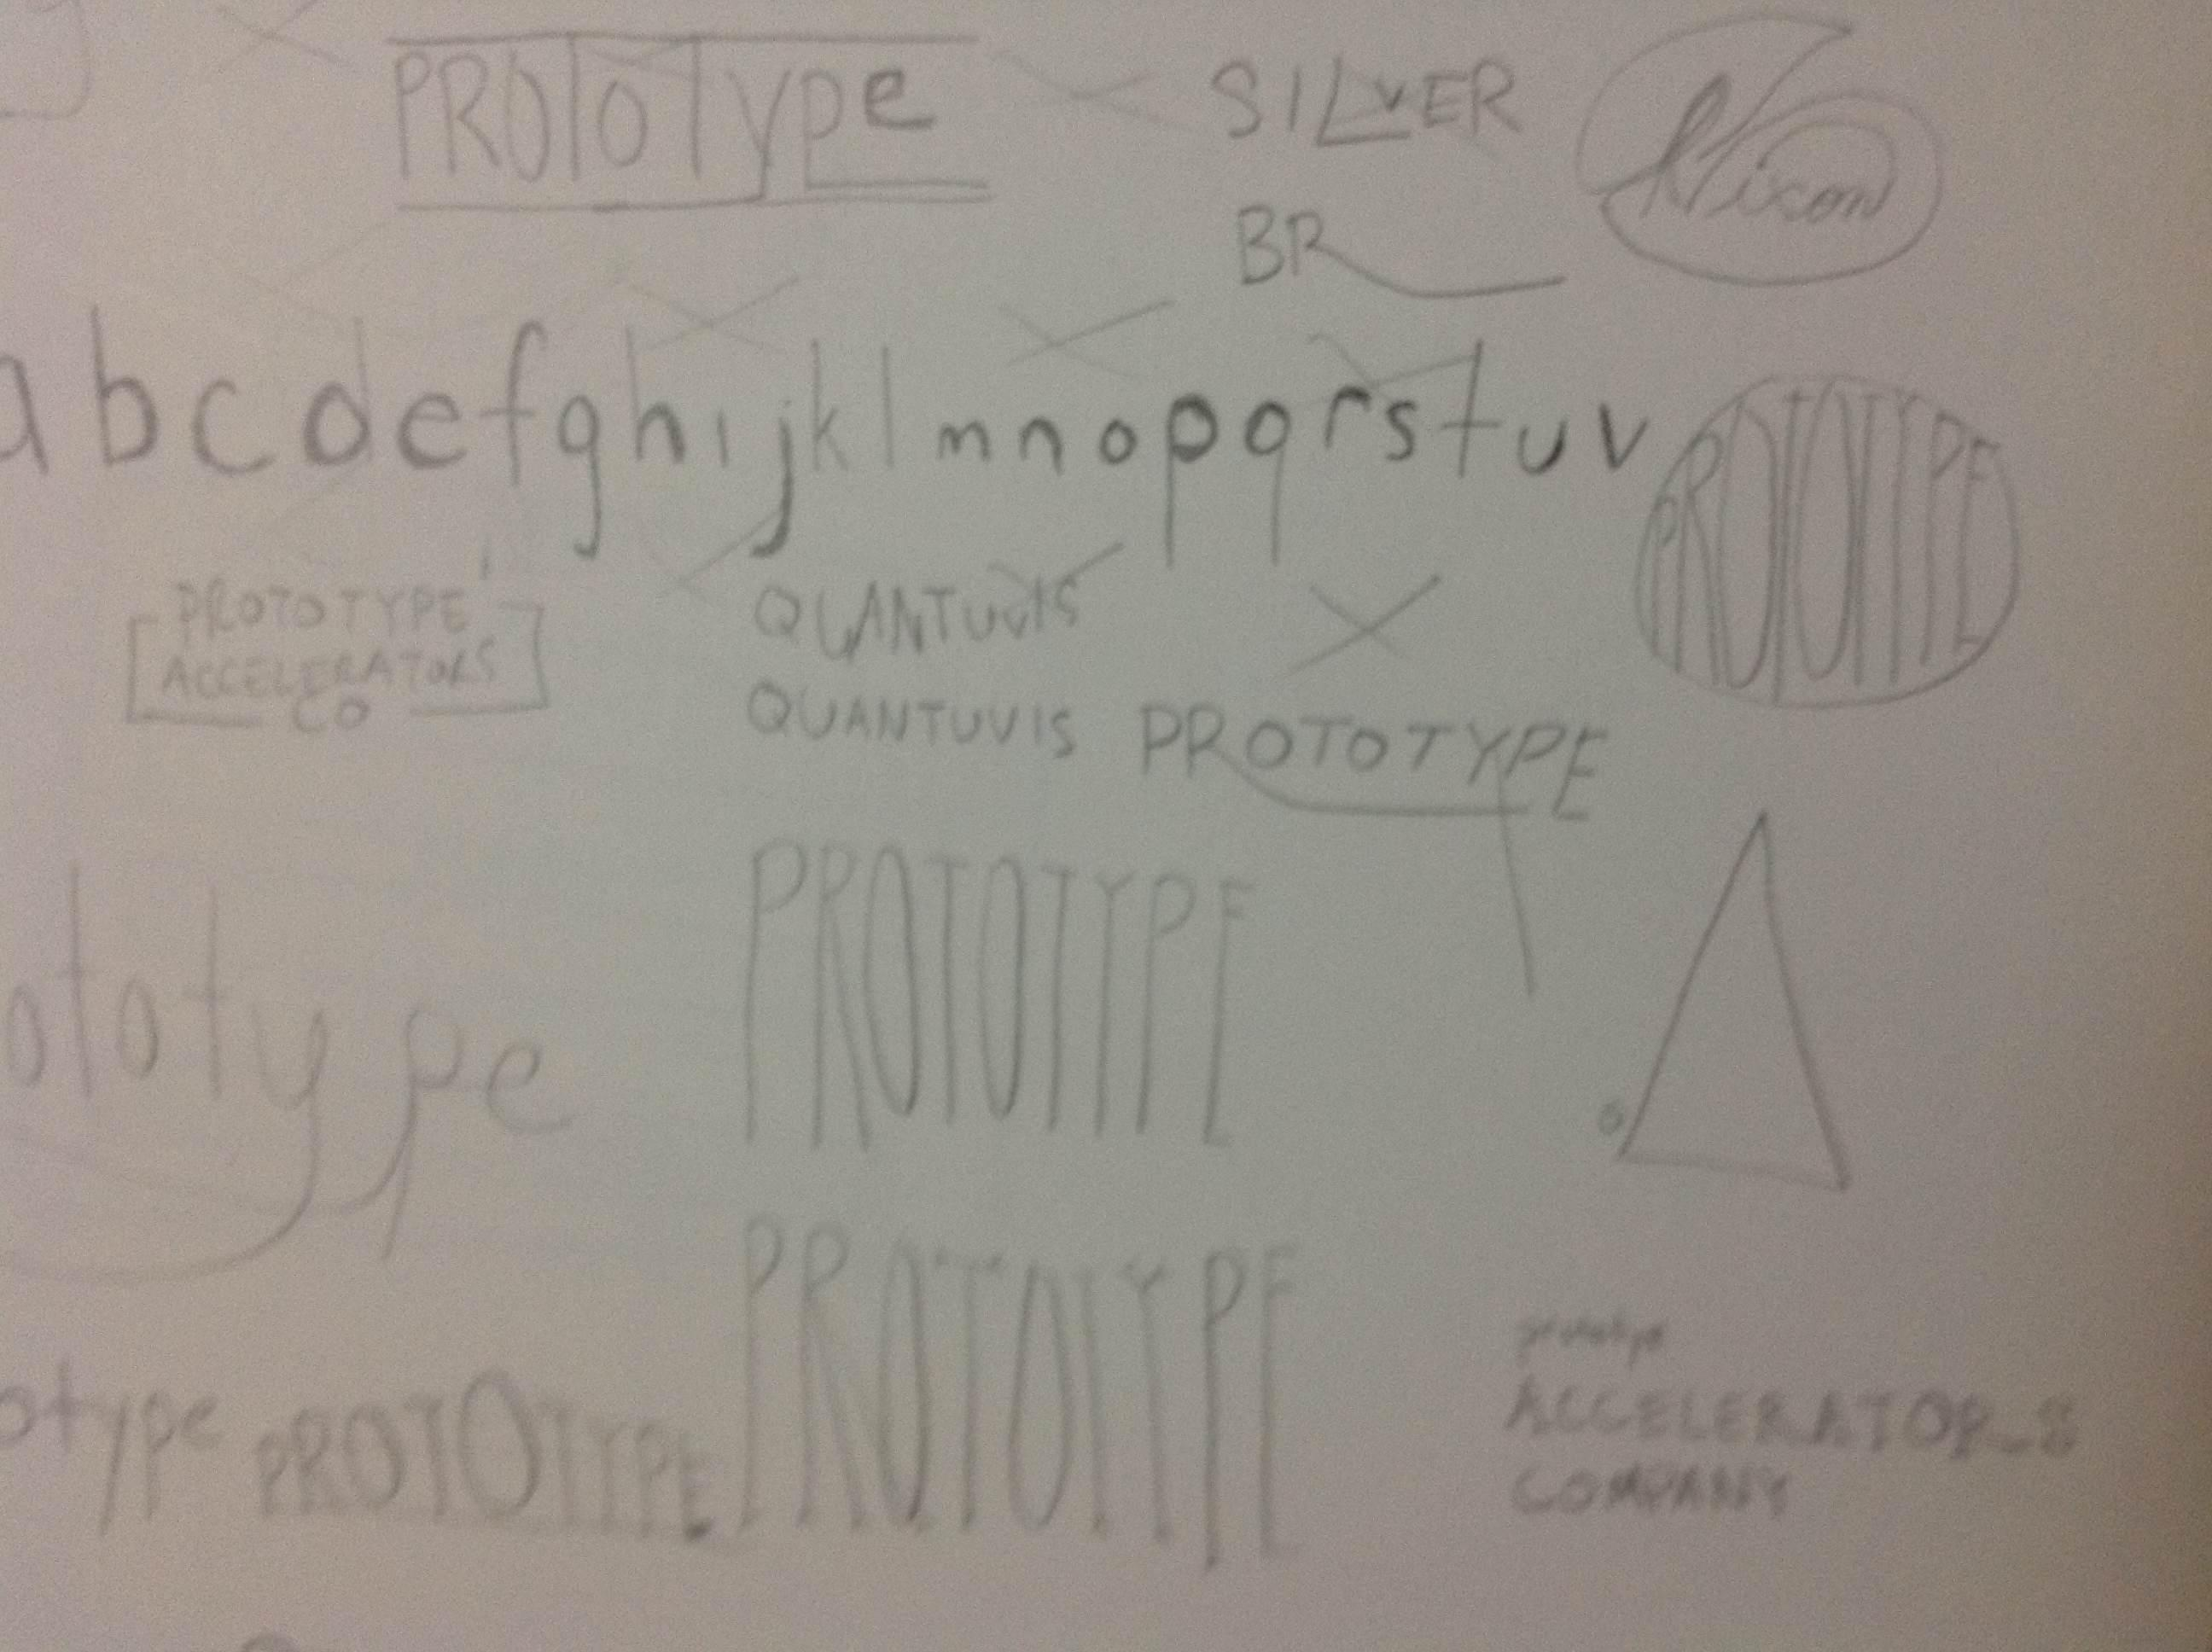 Proto - image 1 - student project